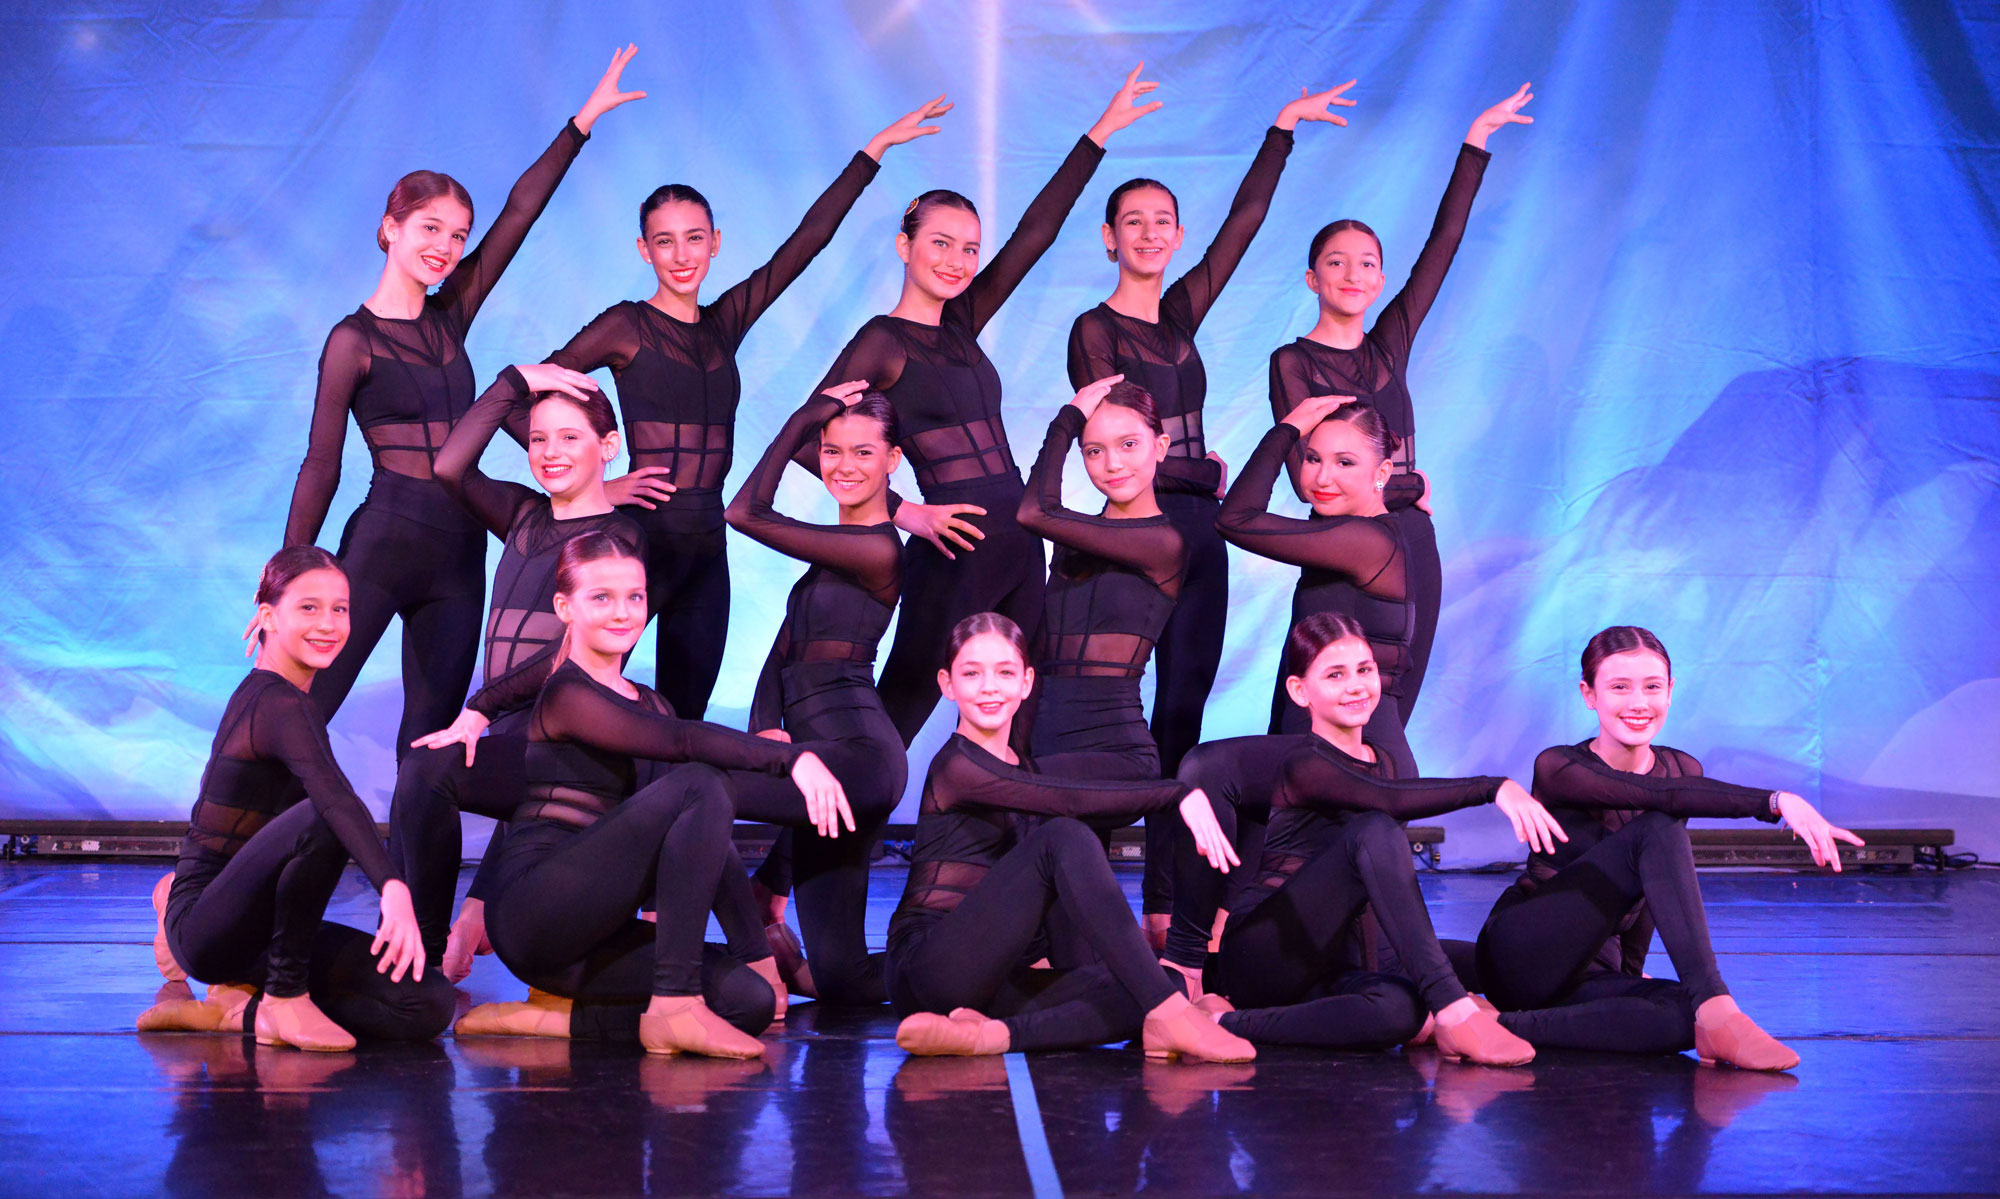 Gulliver middle school dancers performing a jazz number